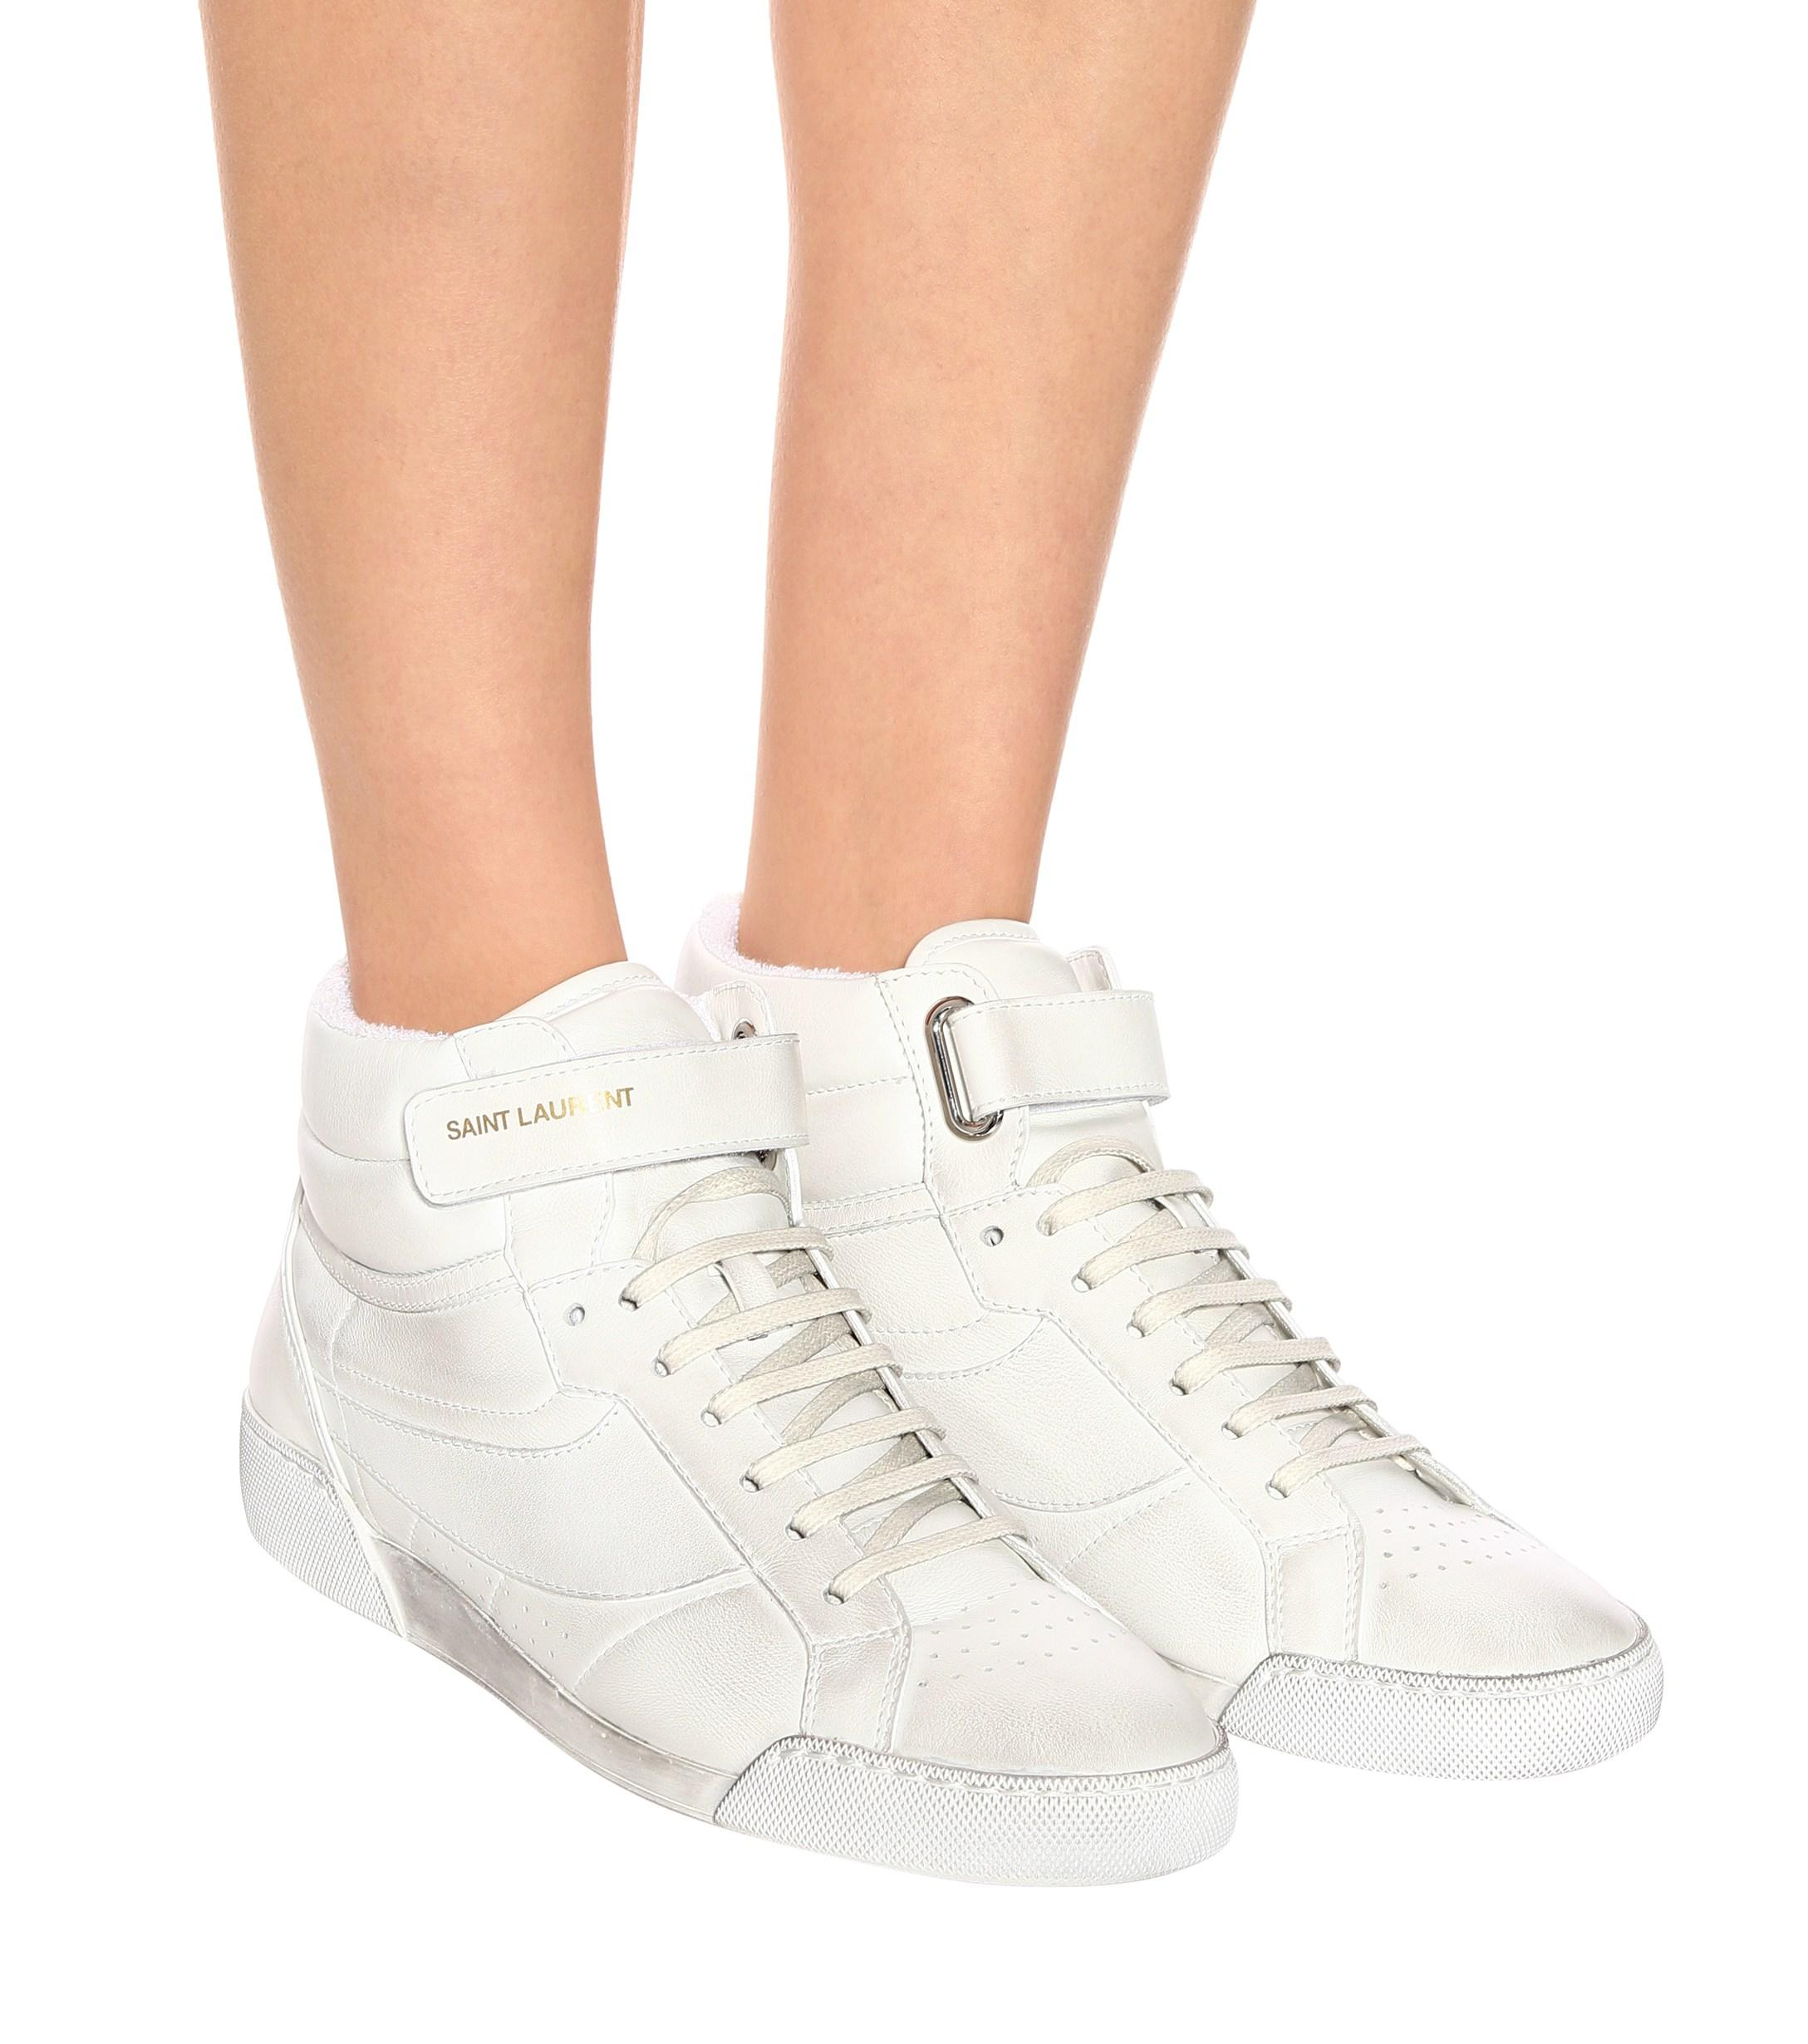 Saint Laurent Lenny Leather Sneakers in